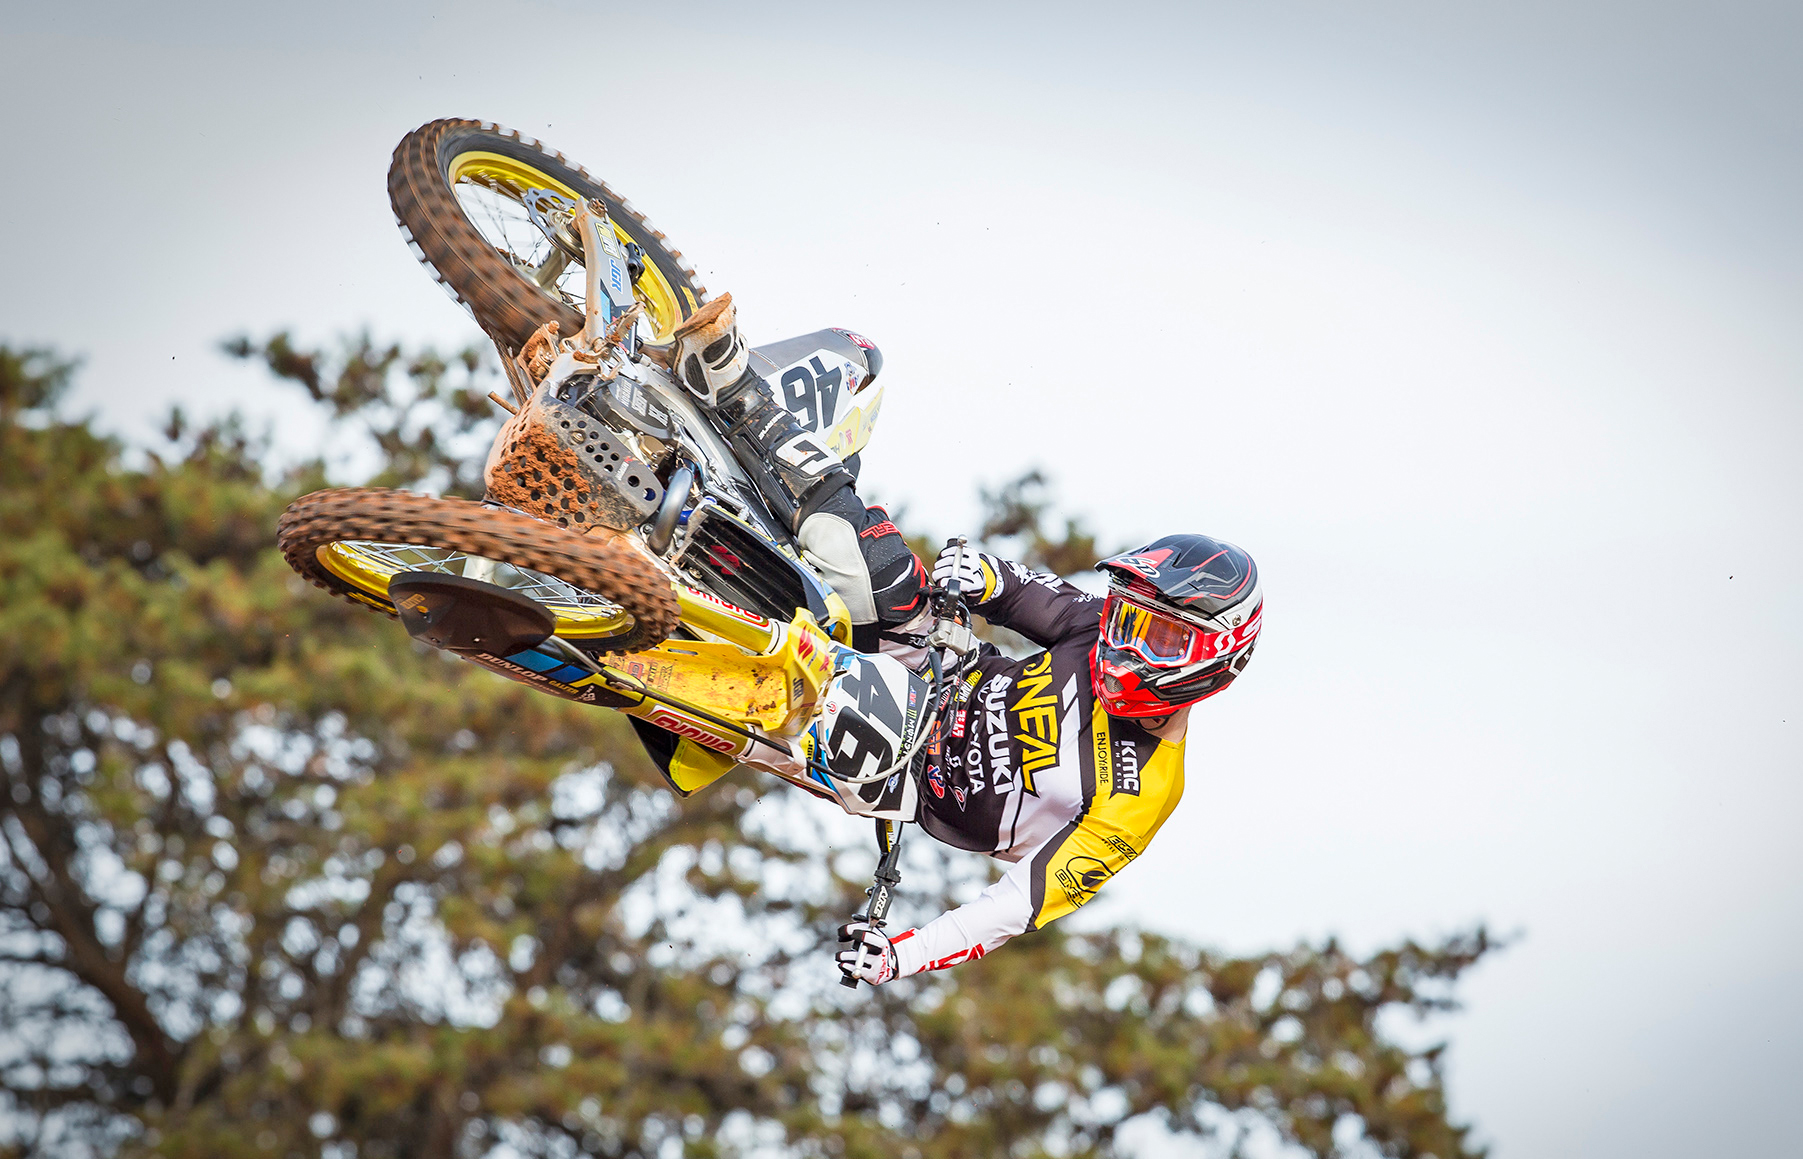 After several successful 450 class outings in 2018 Justin Hill (#46) will now race the Suzuki RM-Z450 - JGRMX